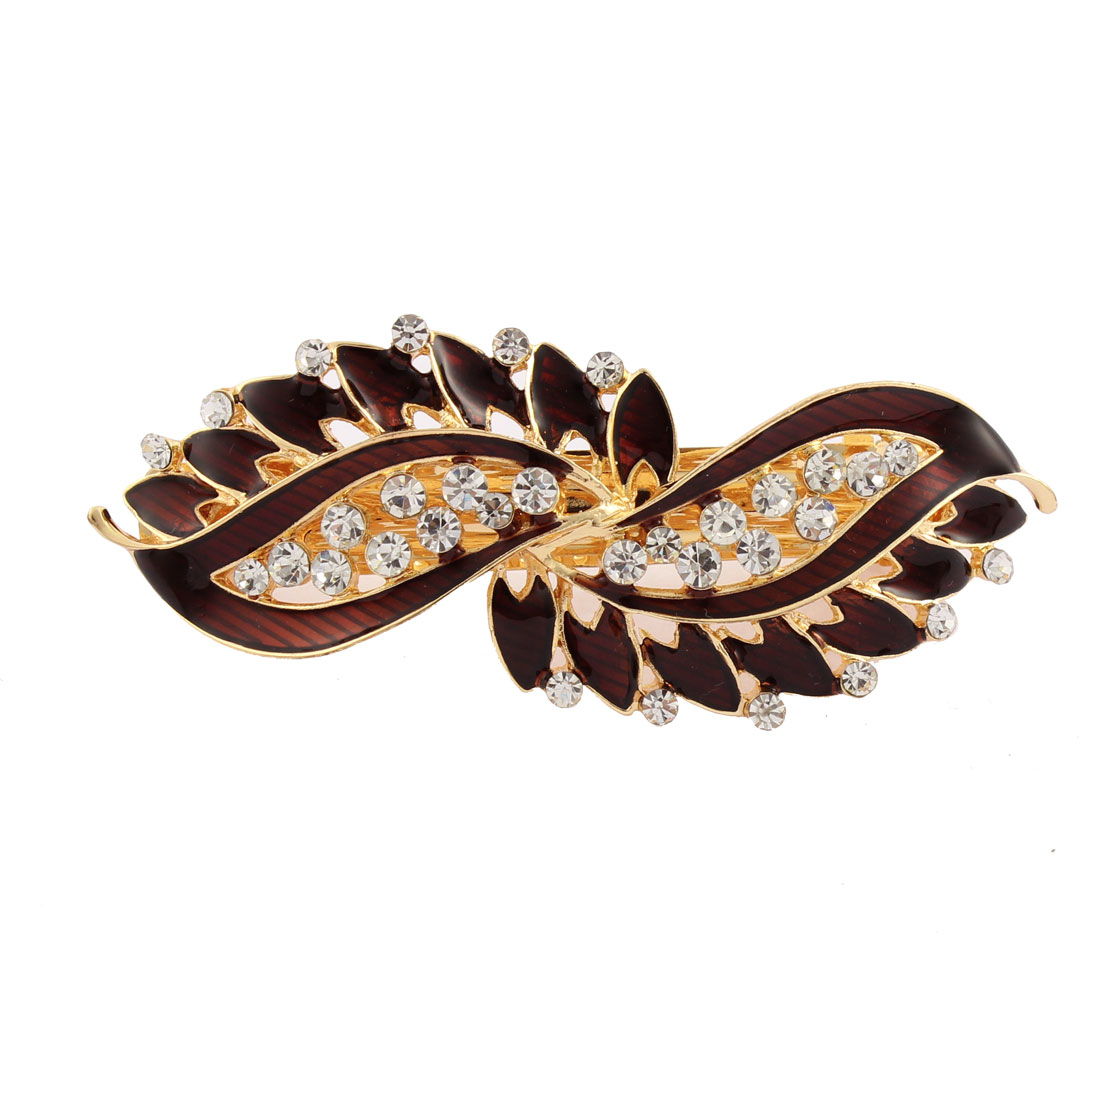 Lady Rhinestone Inlaid Leaf Style Spring Loaded Hair Barrette Clip Dark Red